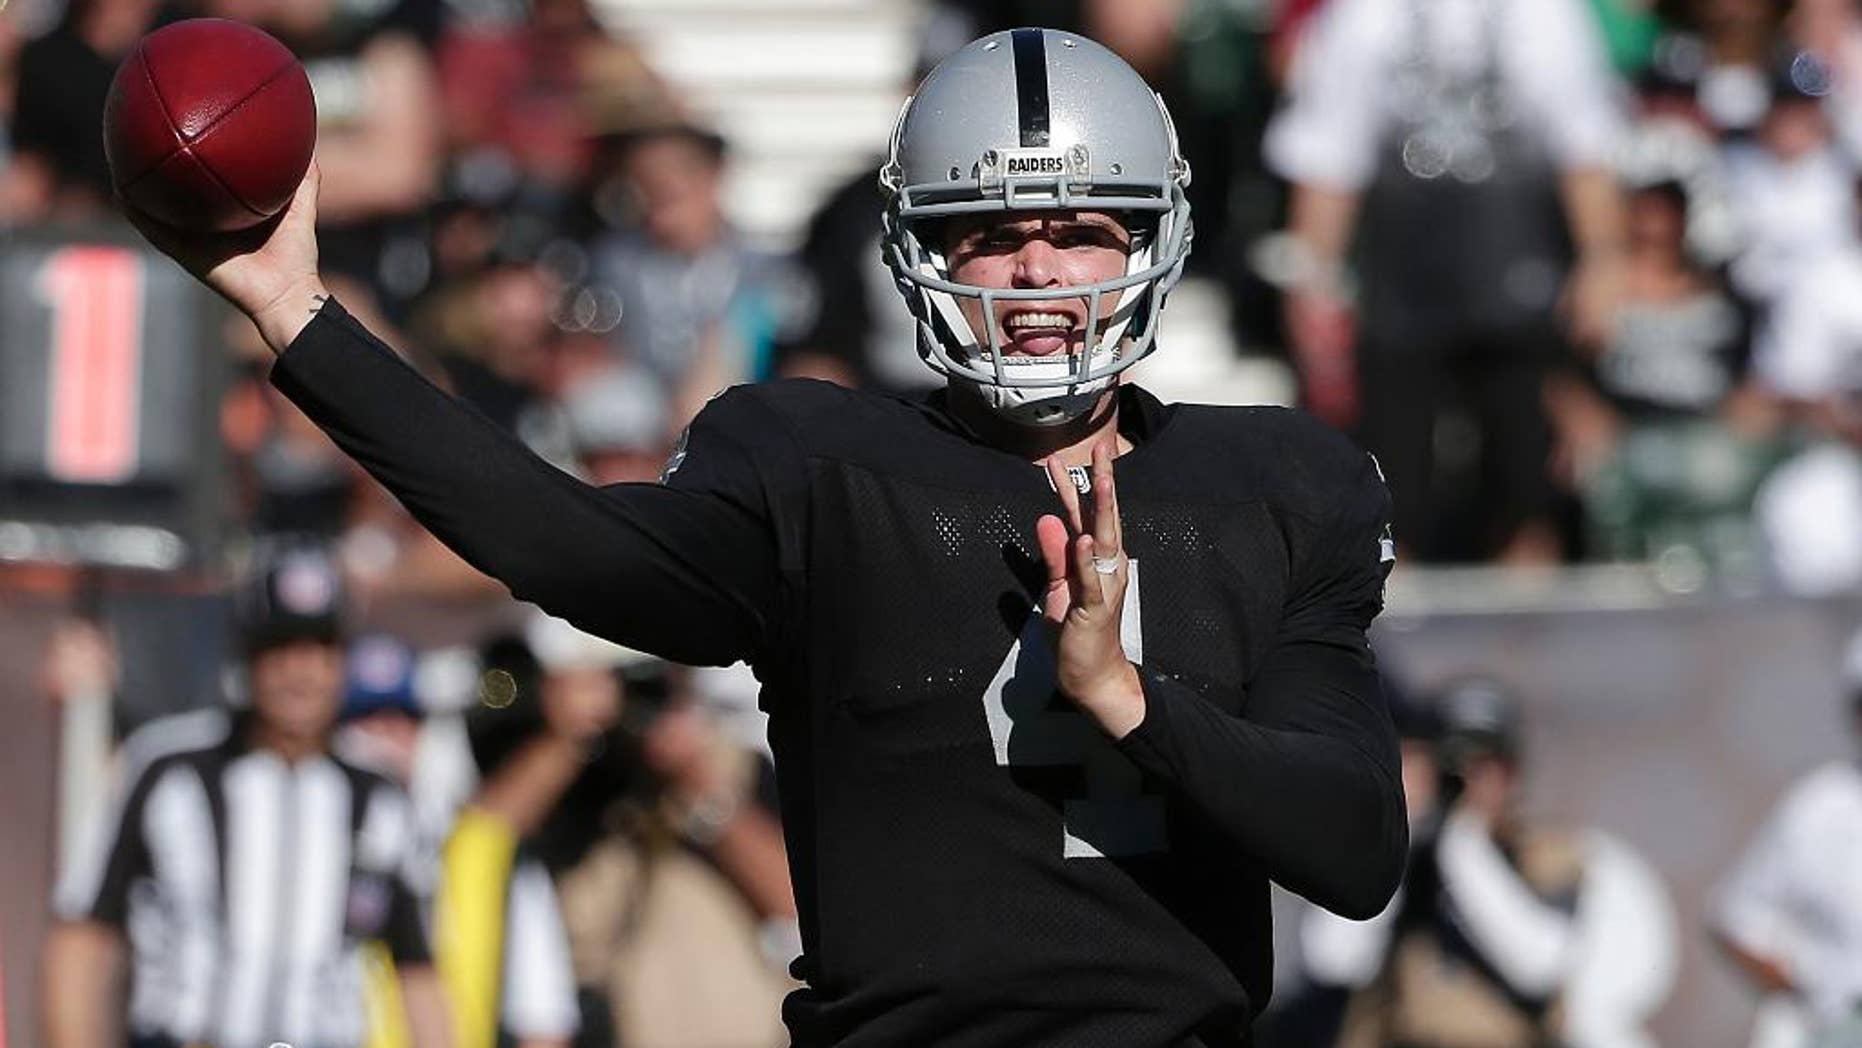 Oakland Raiders quarterback Derek Carr (4) passes against the Arizona Cardinals during the second half of an NFL football game in Oakland, Calif., Sunday, Oct. 19, 2014. The Cardinals won 24-13. (AP Photo/Marcio Jose Sanchez)